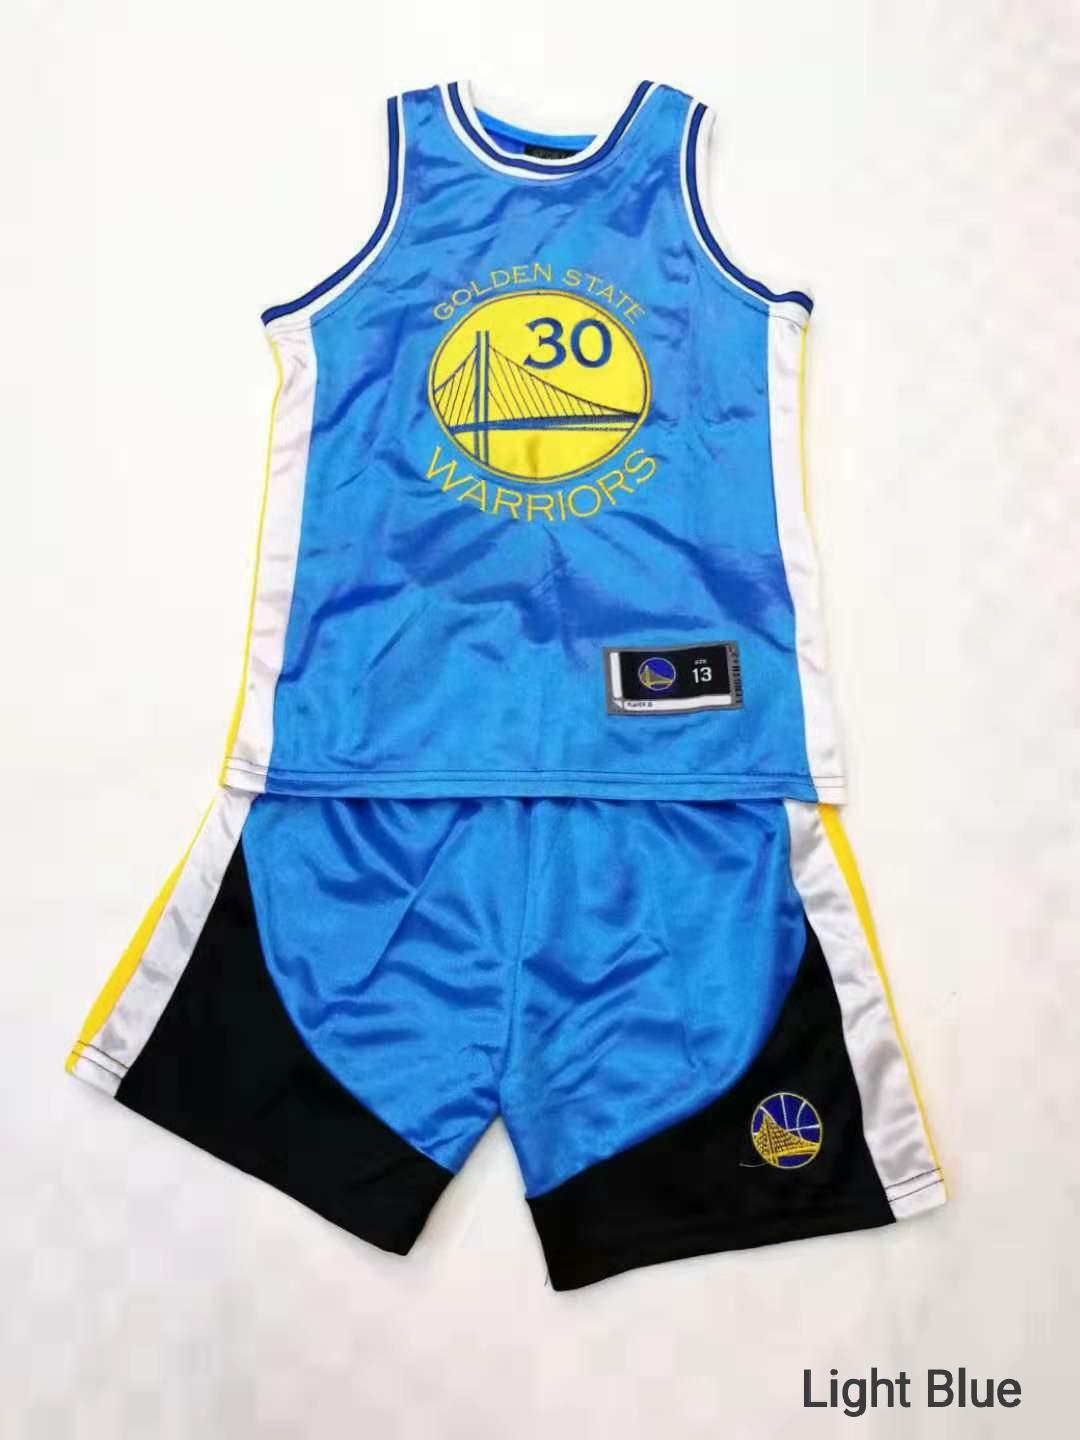 quality design cdfb4 b2a70 NBA Jersey unisex set golden state for kids boys girls curry #30 basketall  suit red blue black red yellow white #5002